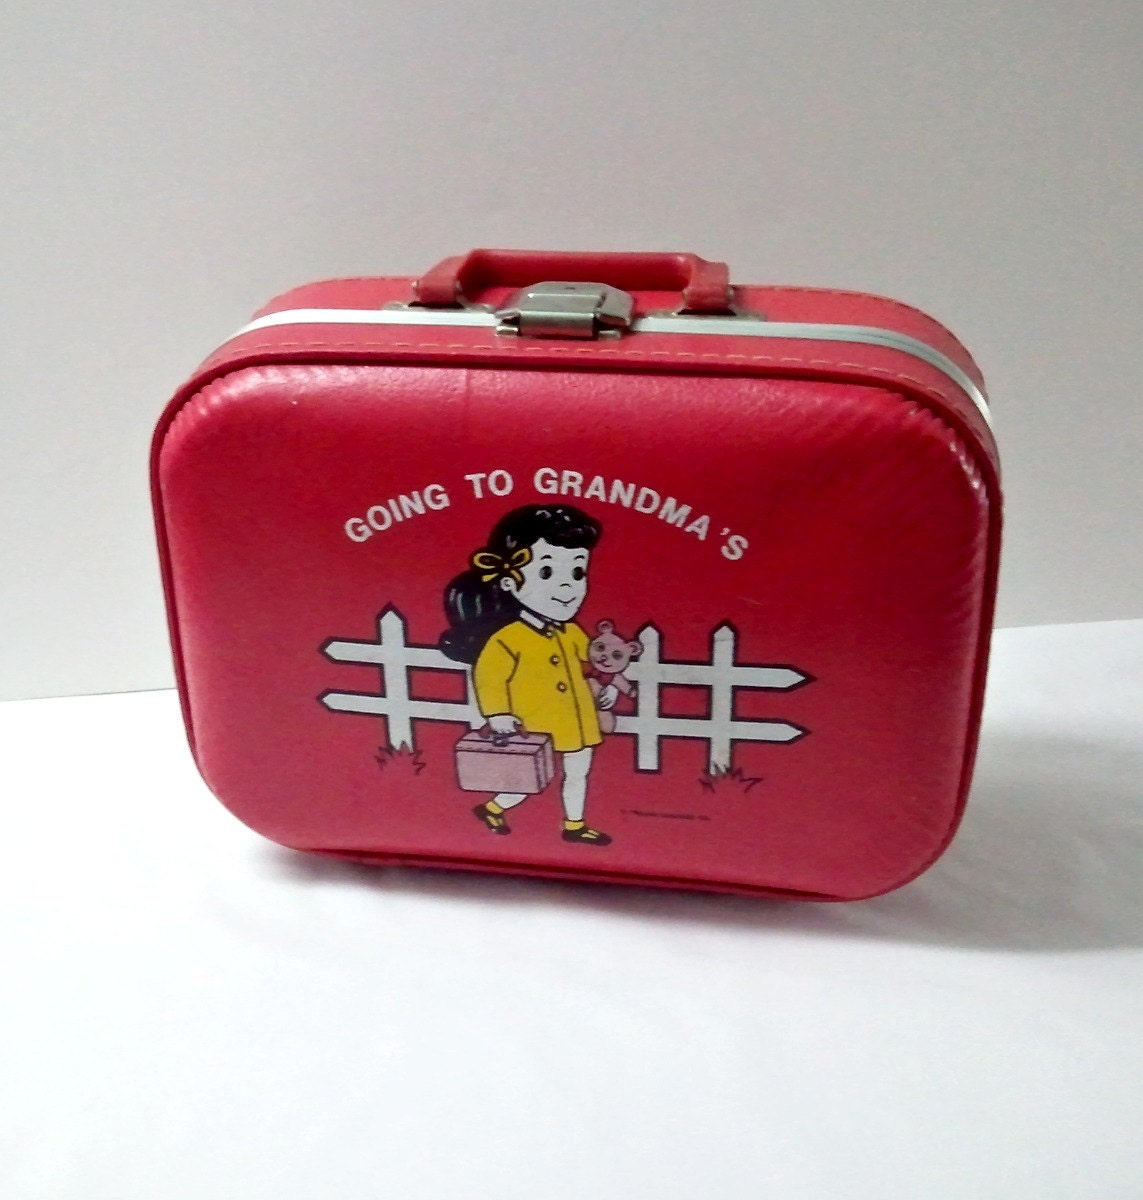 Vintage Girl S Suitcase Red Going To Grandma S By